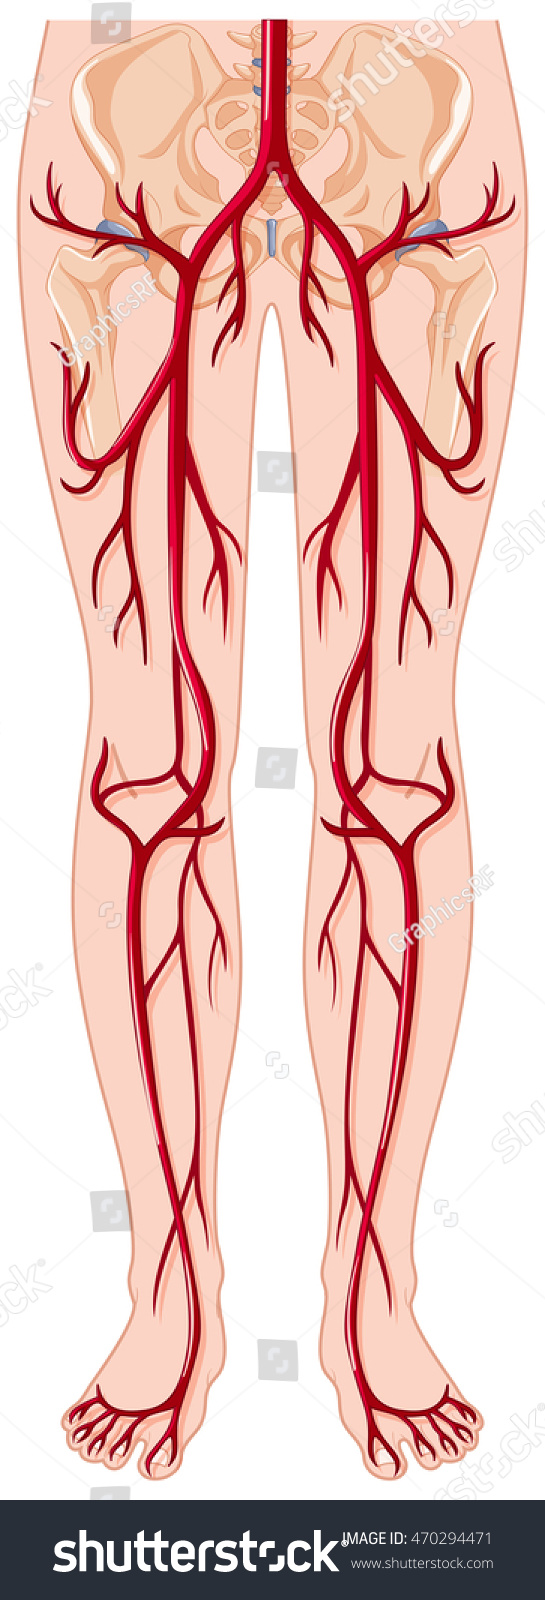 Blood Vessels Human Body Illustration Stock Vector Royalty Free